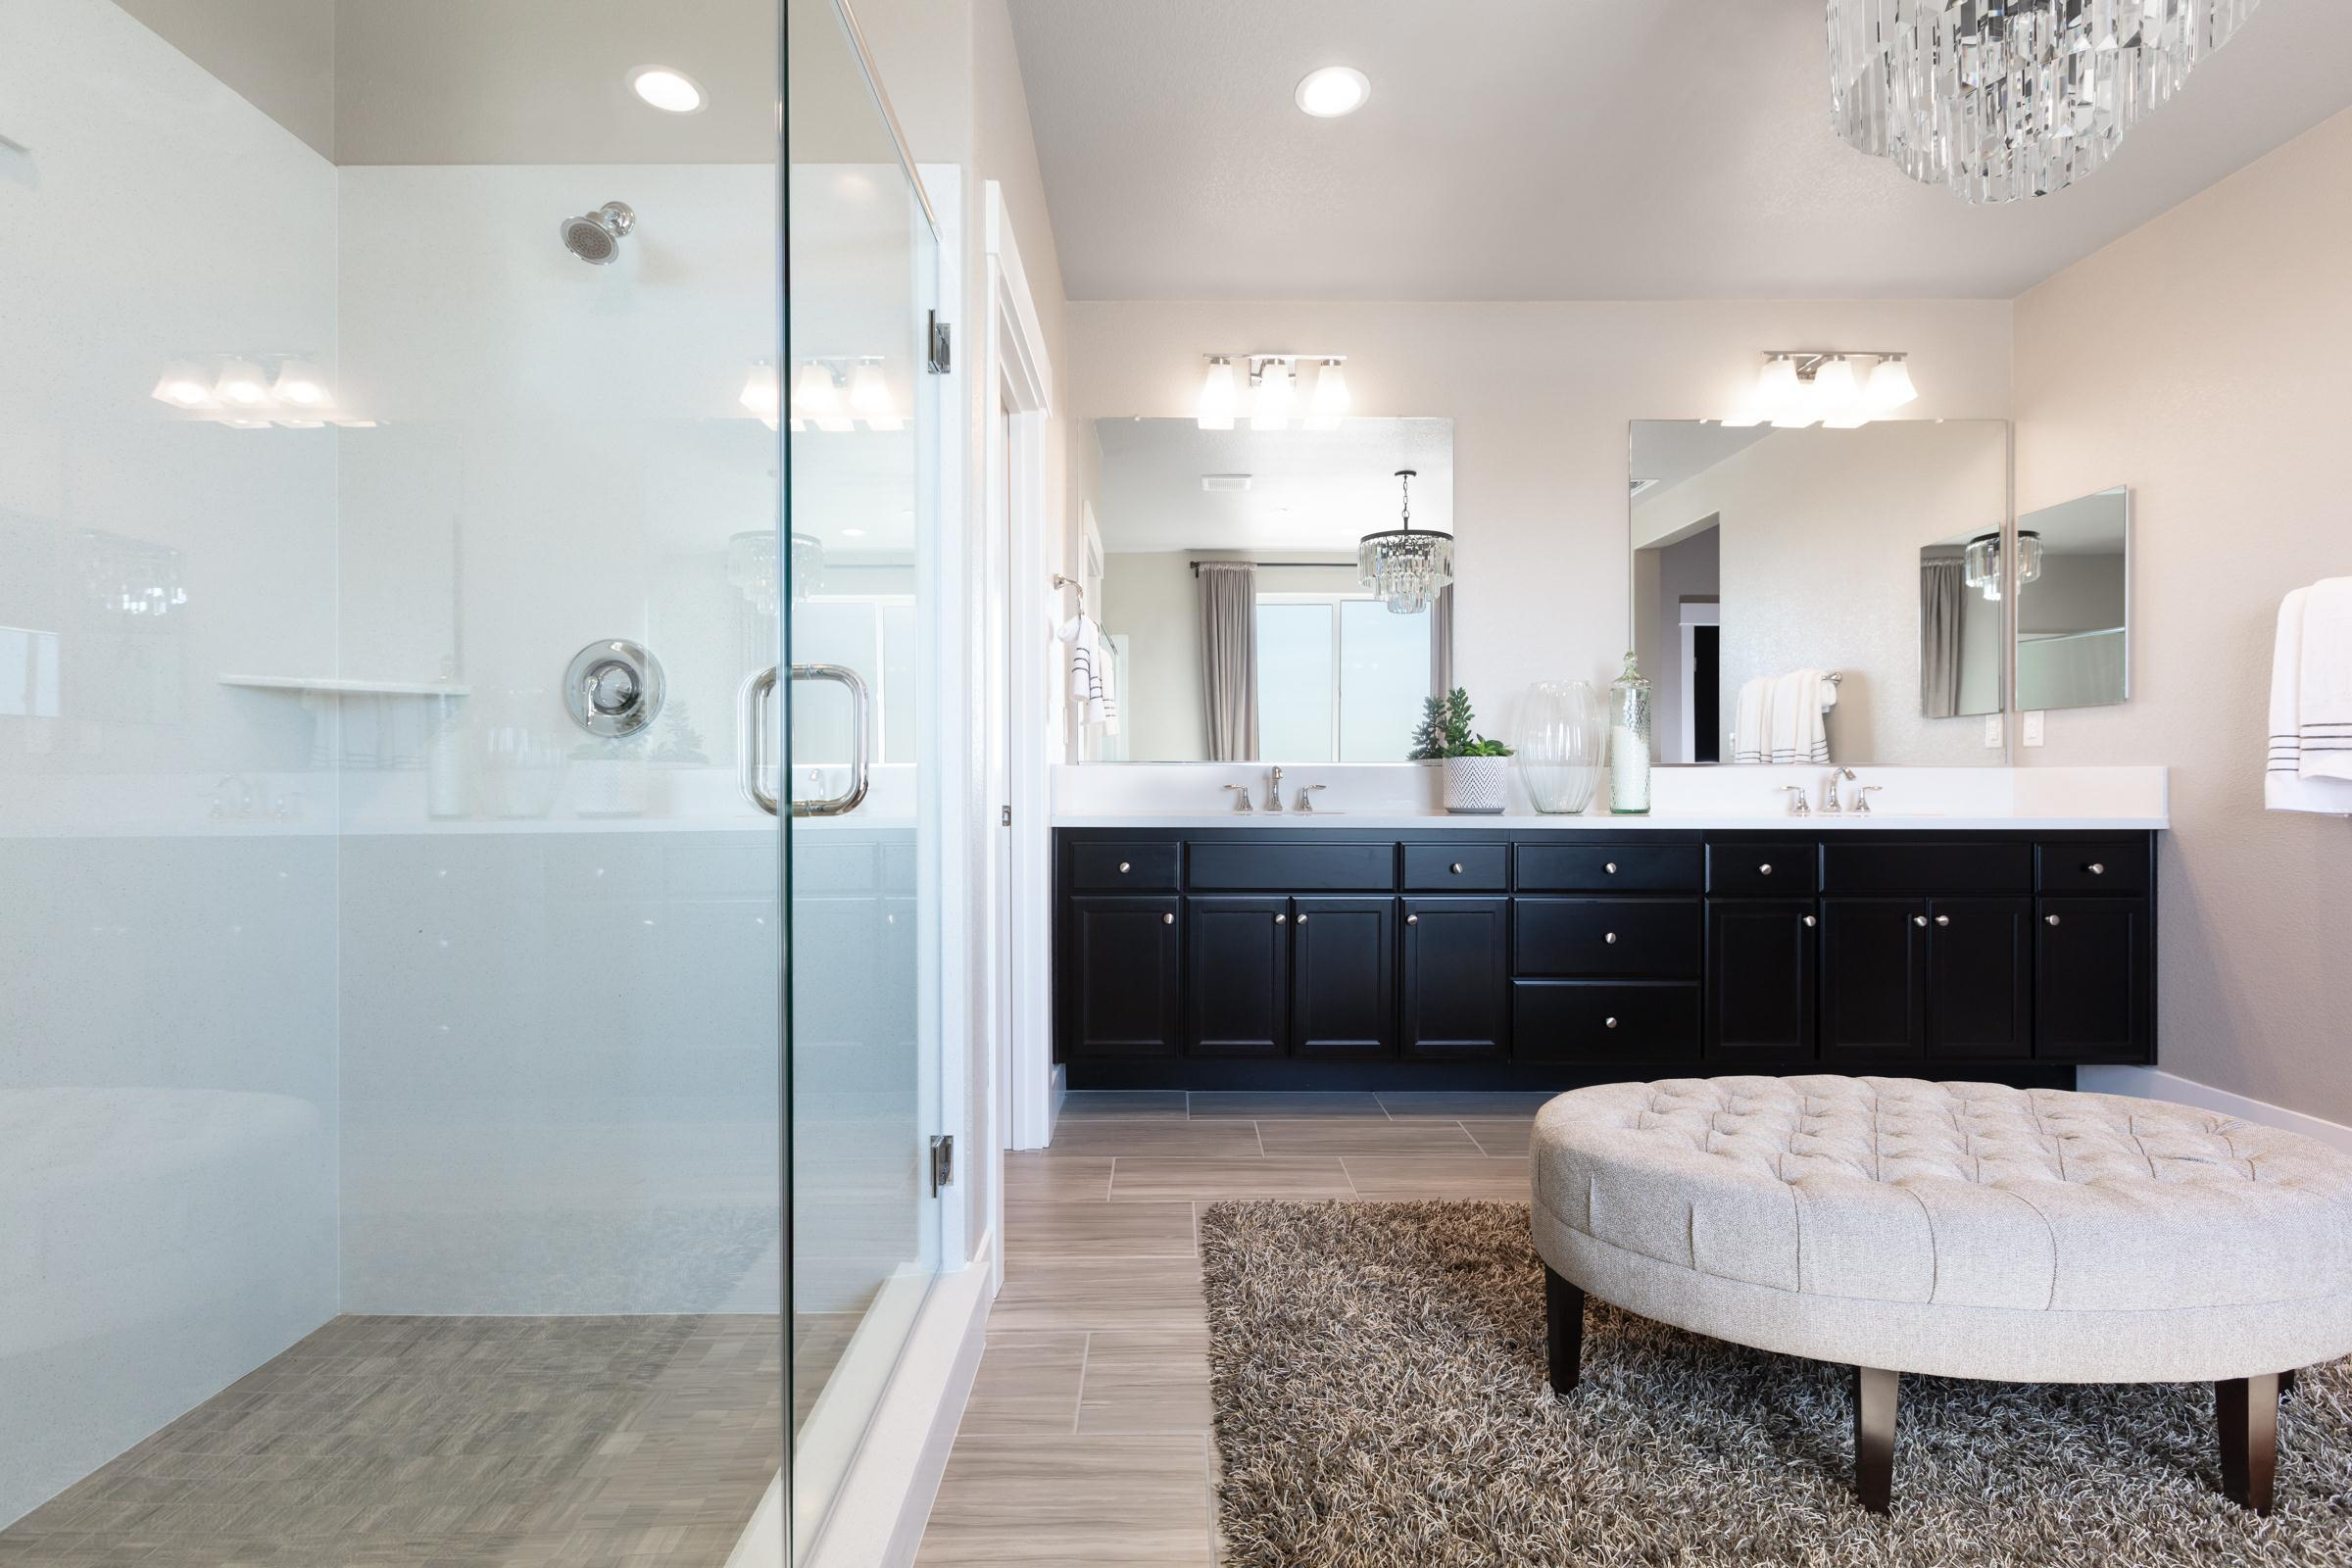 Bathroom featured in the Plan 3 By Anthem United Homes Inc in Stockton-Lodi, CA